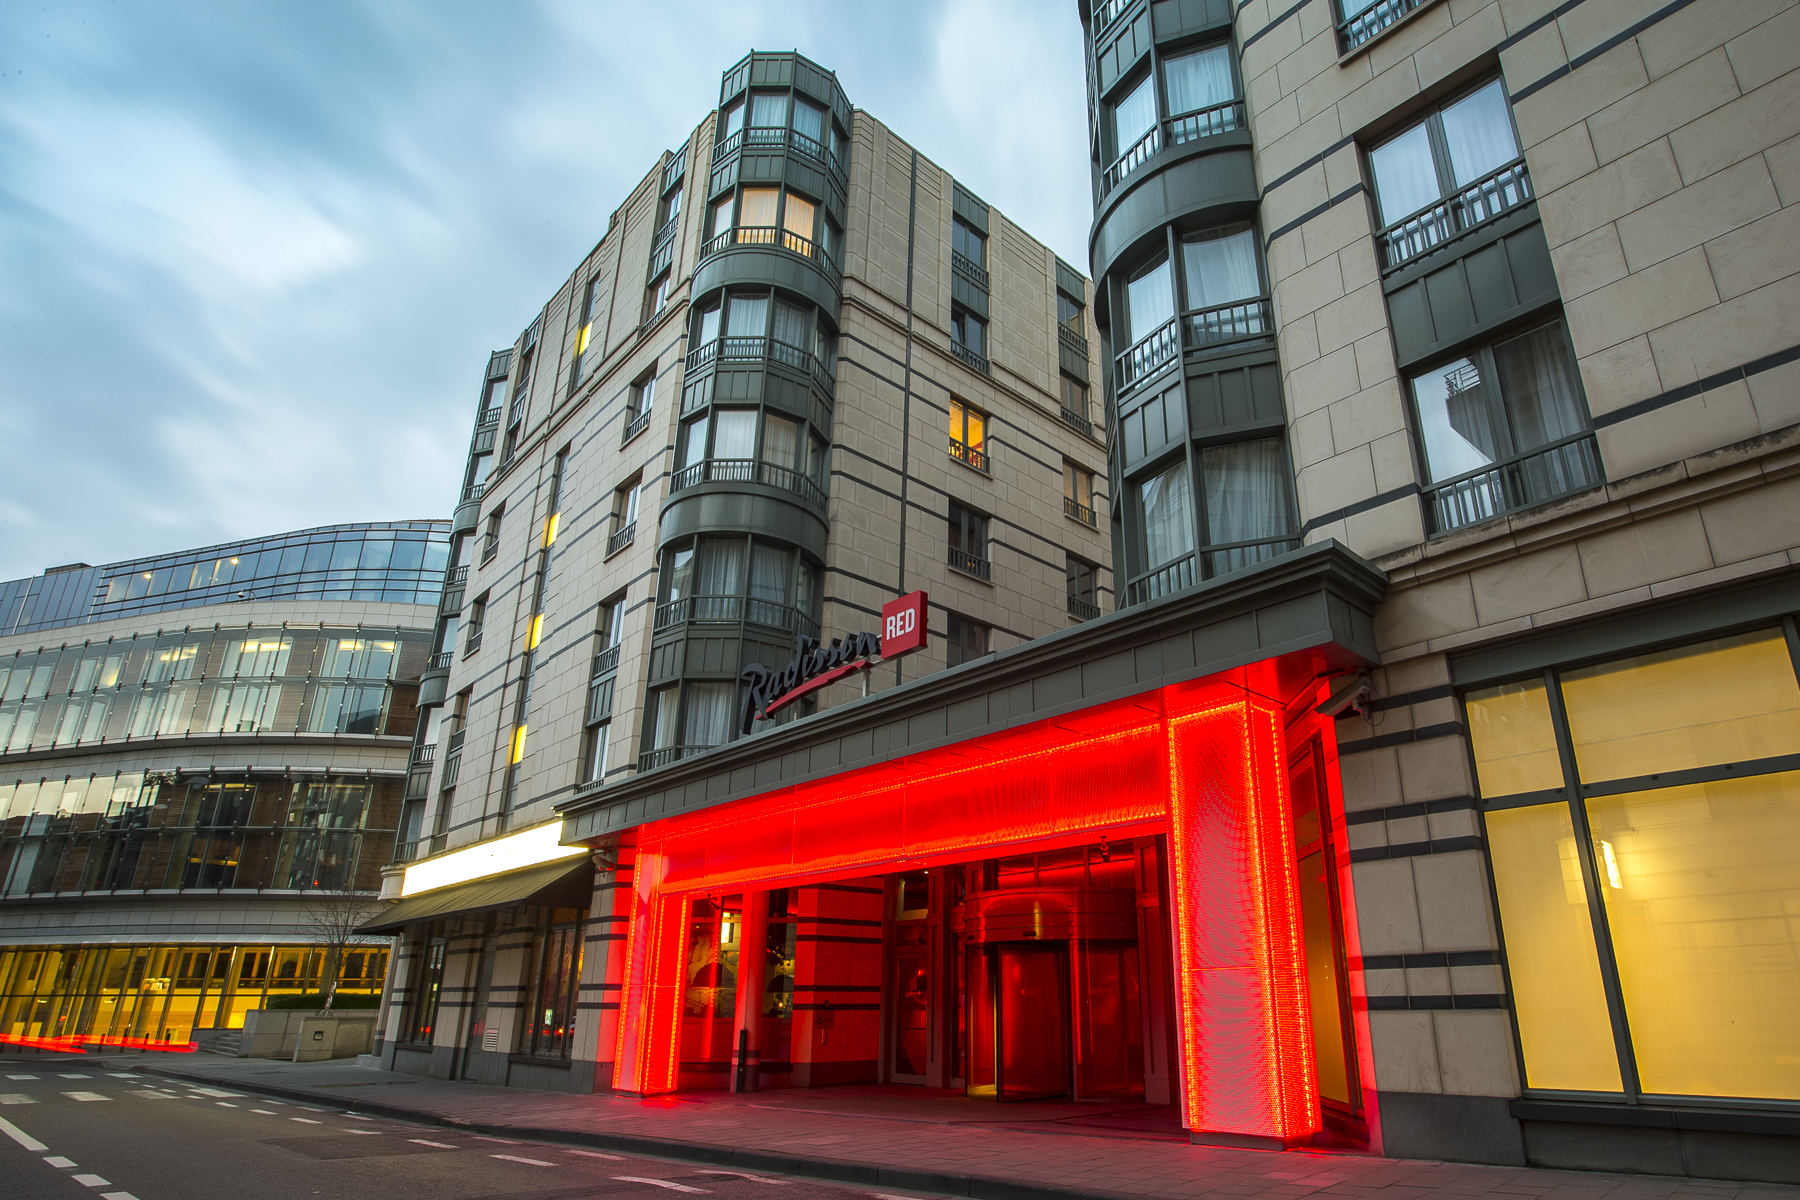 Radisson Red This Millennial Haven Is Disrupting The